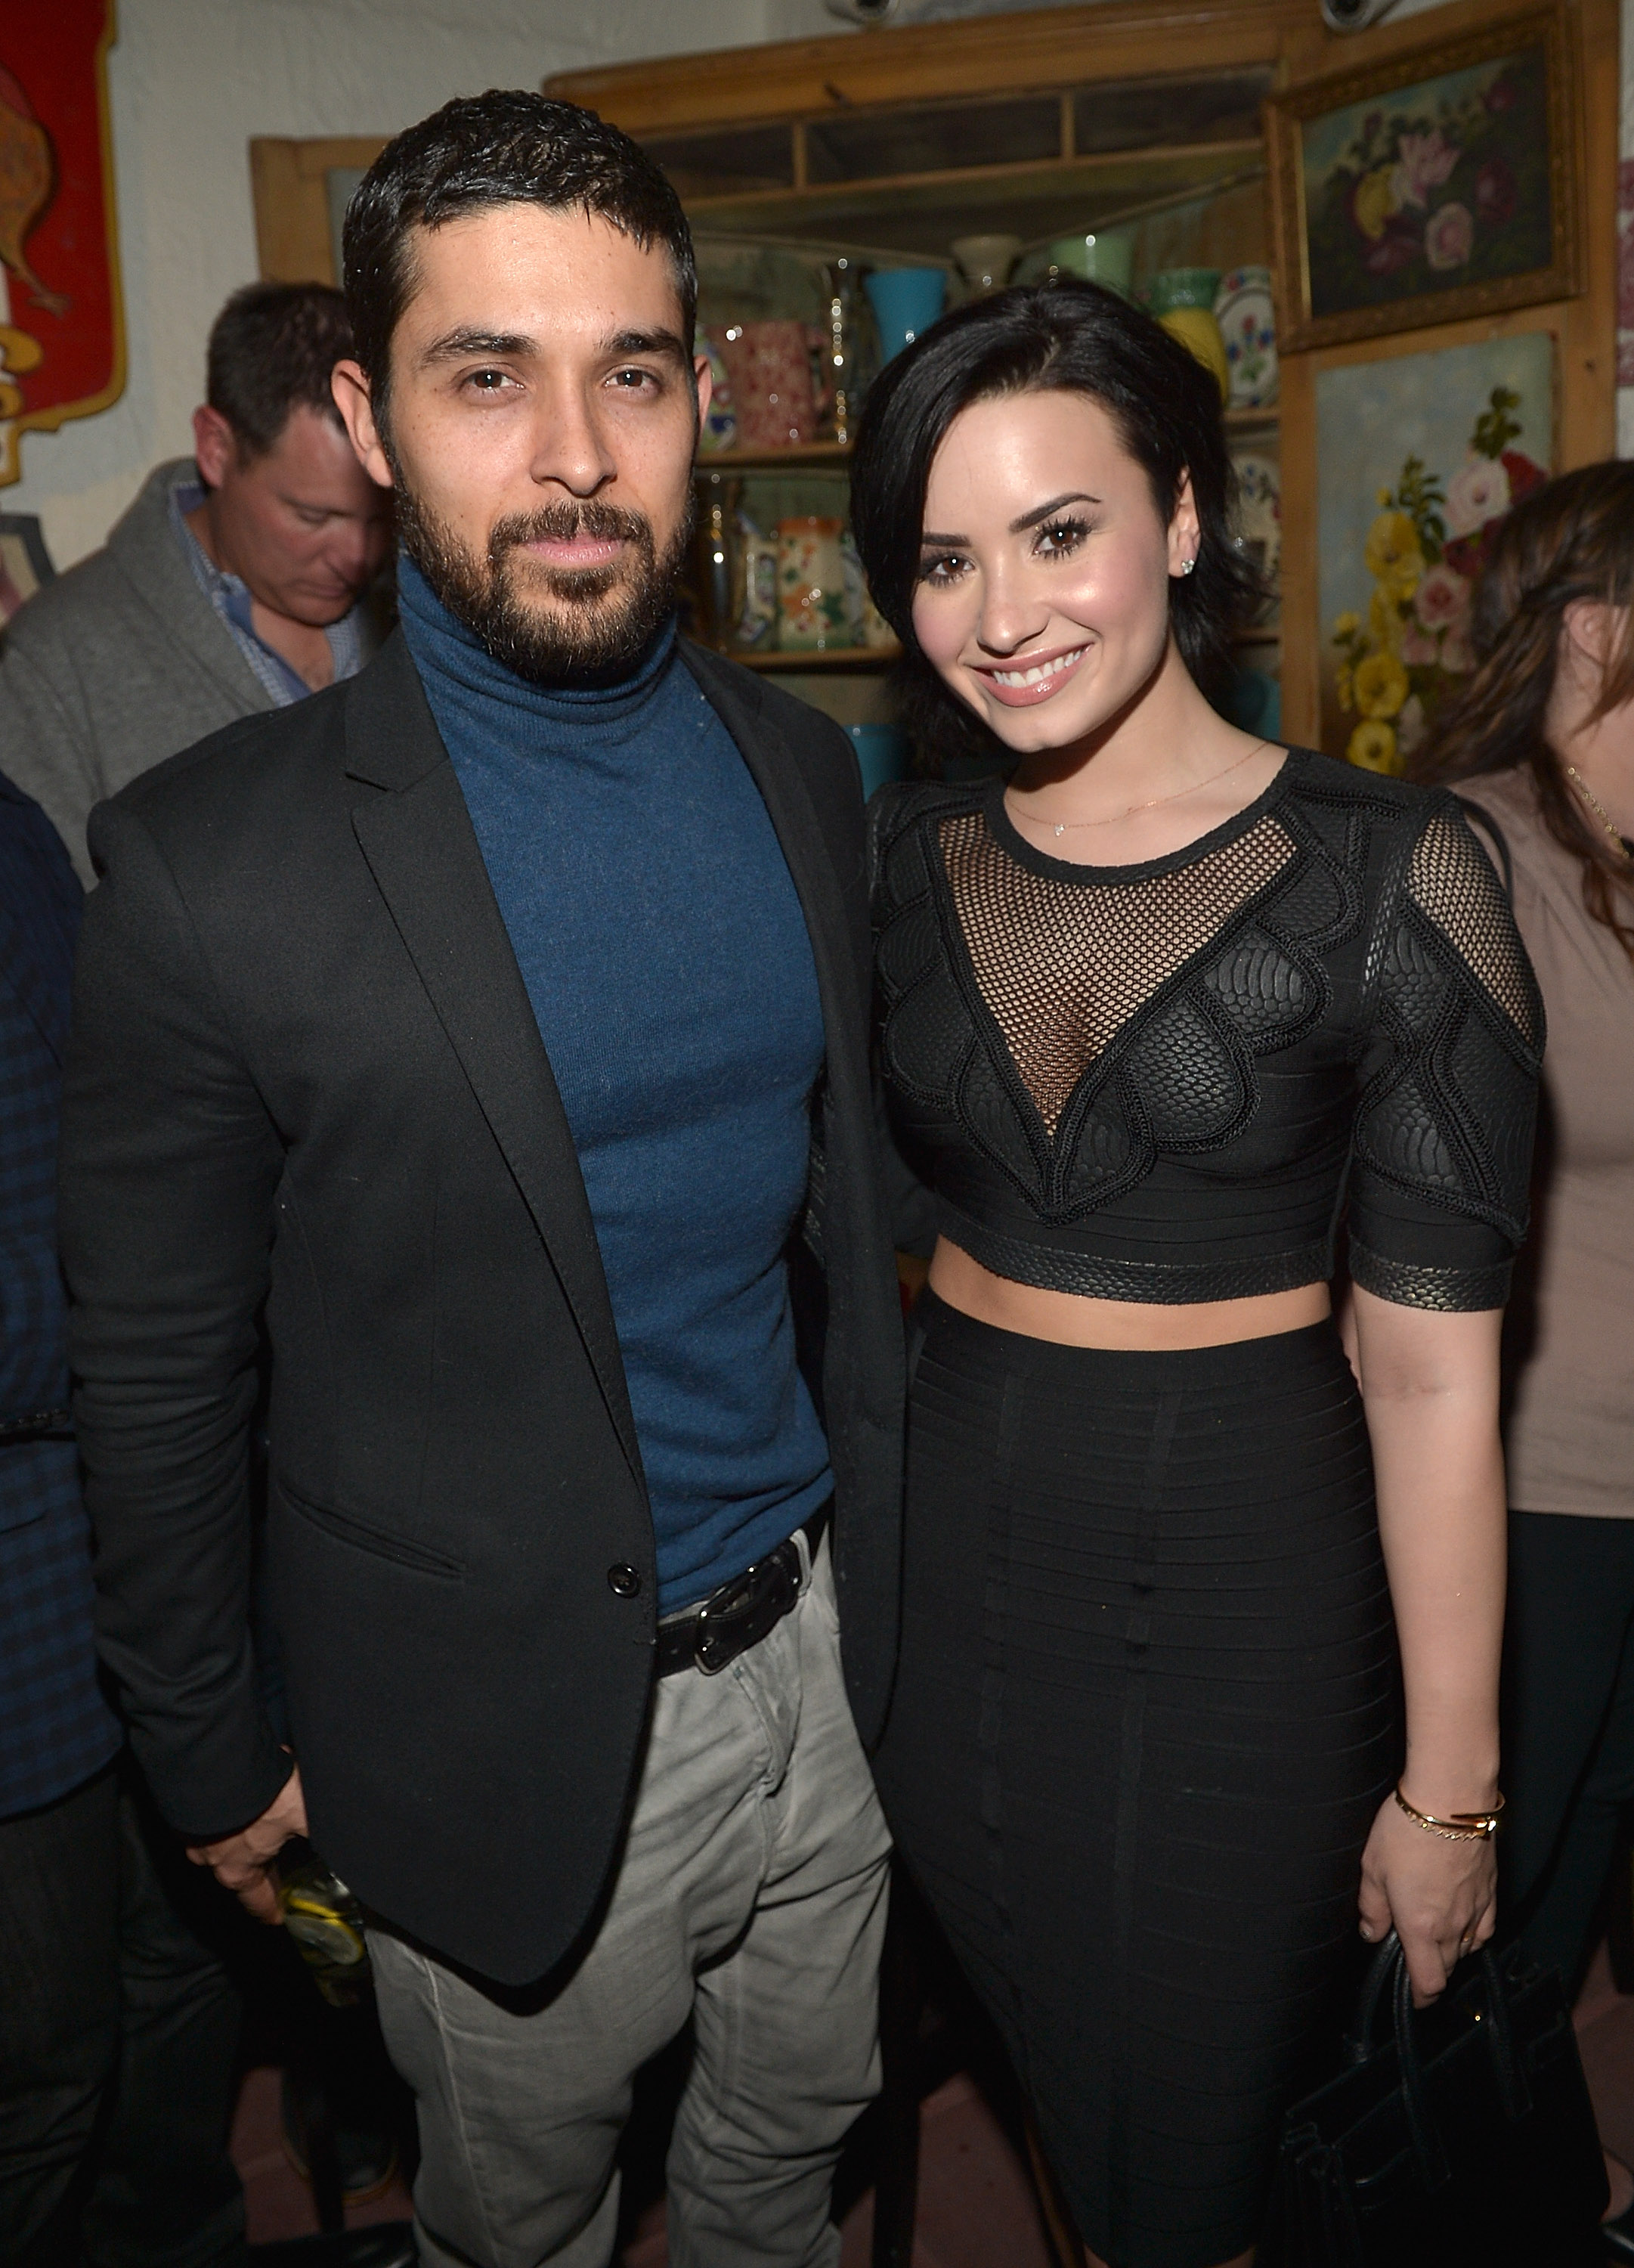 Wilmer Valderrama and Demi Lovato celebrate Nick Jonas' song 'Jealous' being the #1 At Top 40 radio hit at The Ivy on January 20, 2015, in Los Angeles, United States. (Source: Getty Images)